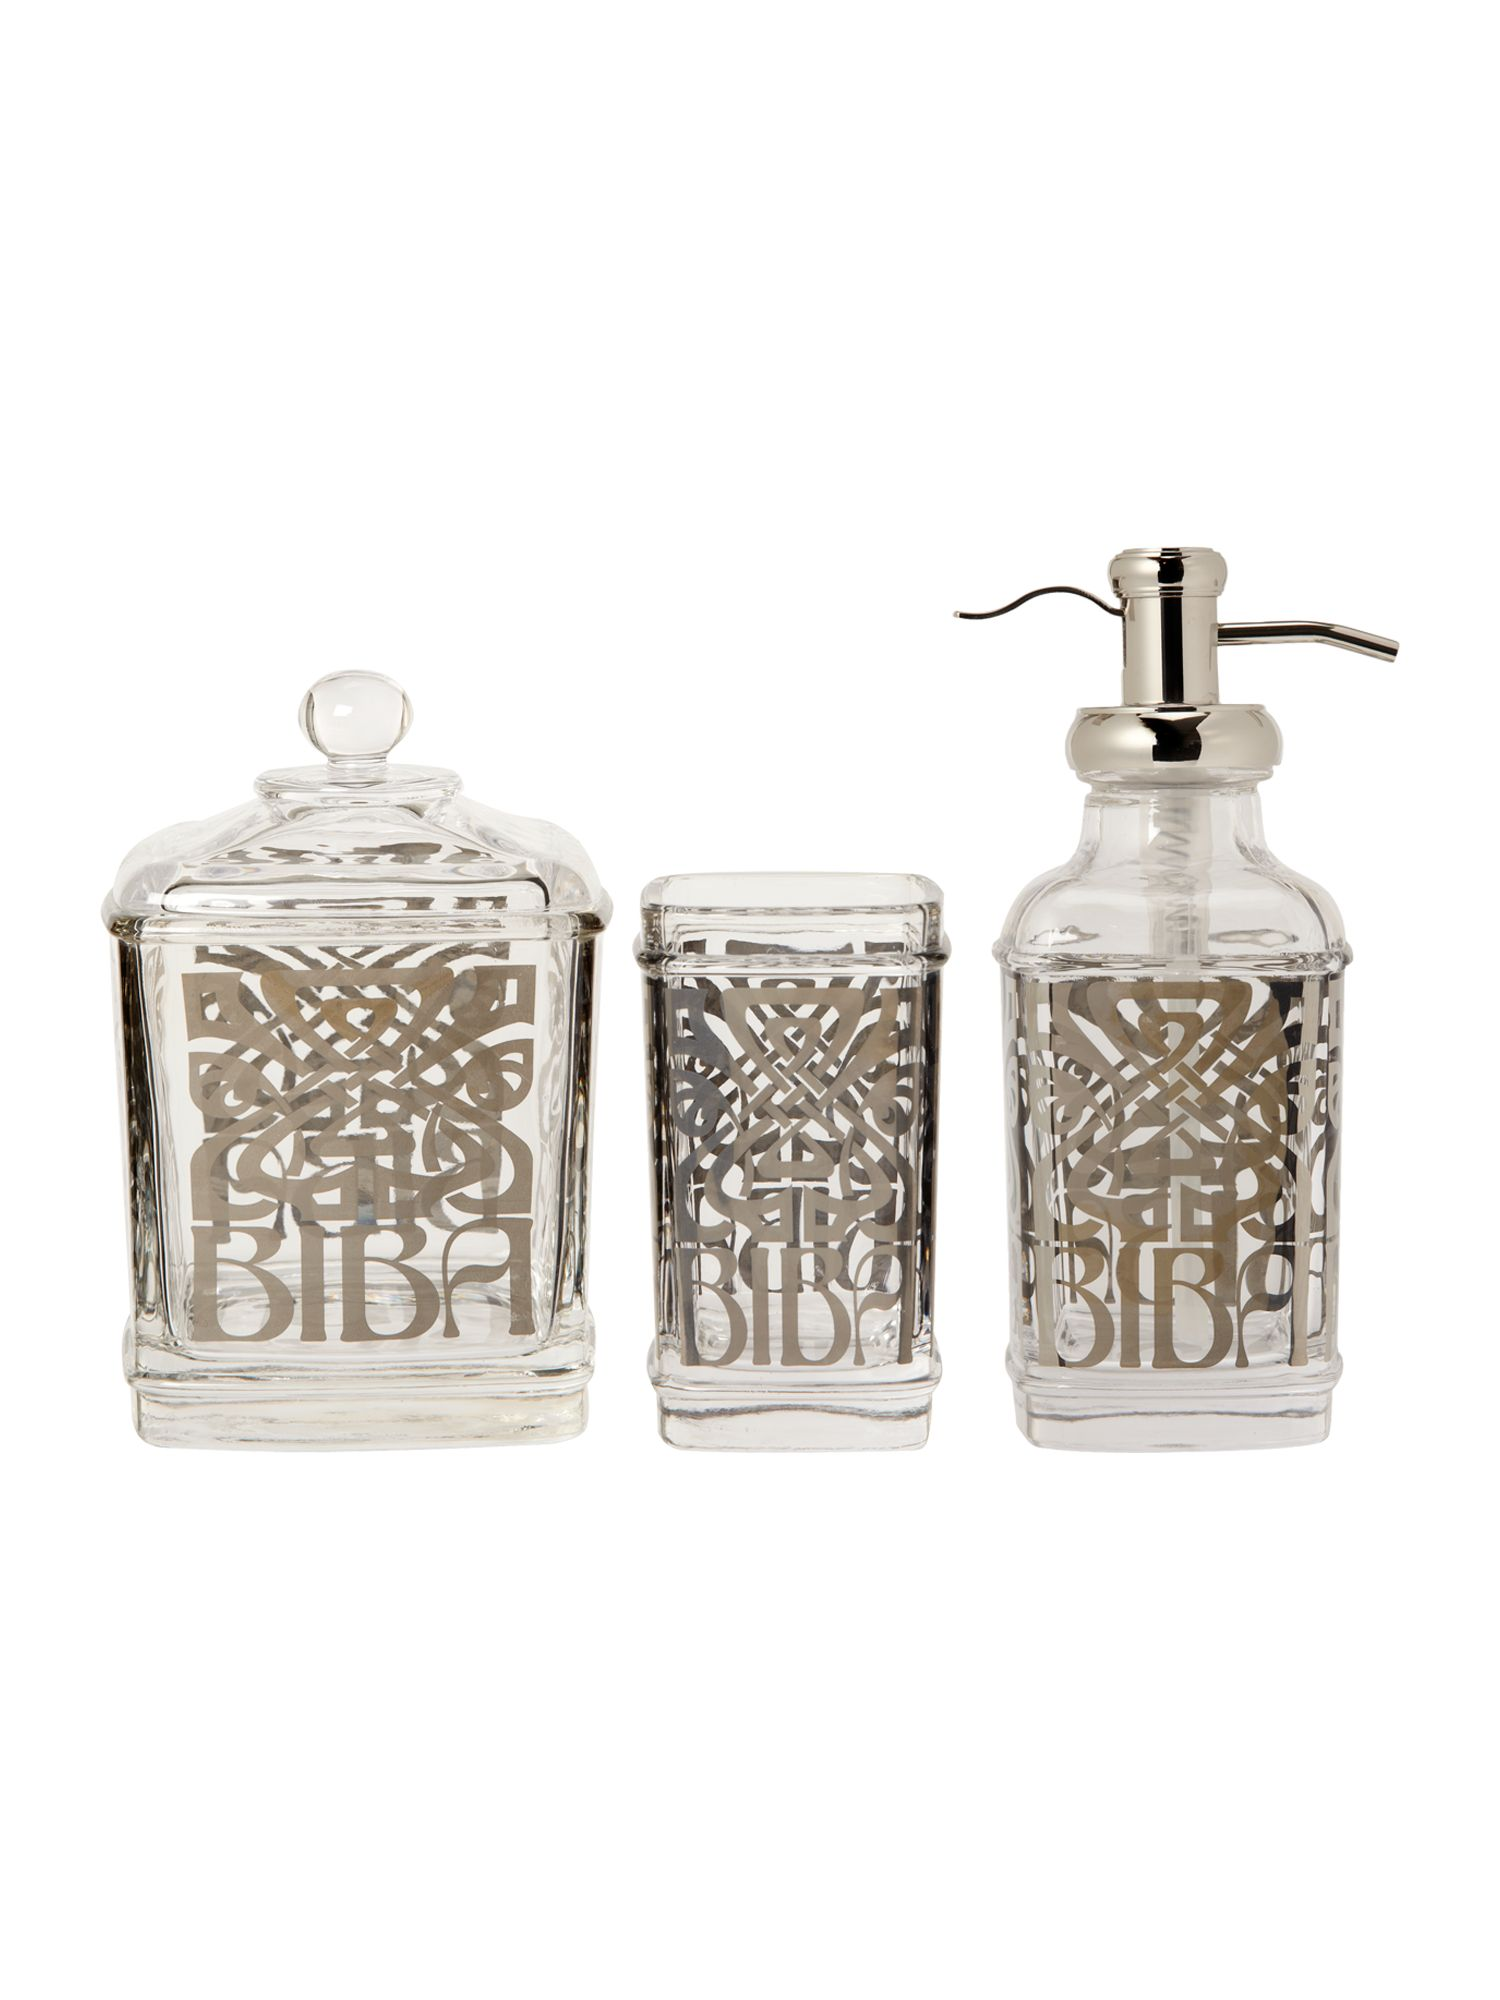 glass bathroom accessories sets.  Biba Glass Bath Accessories House of Fraser